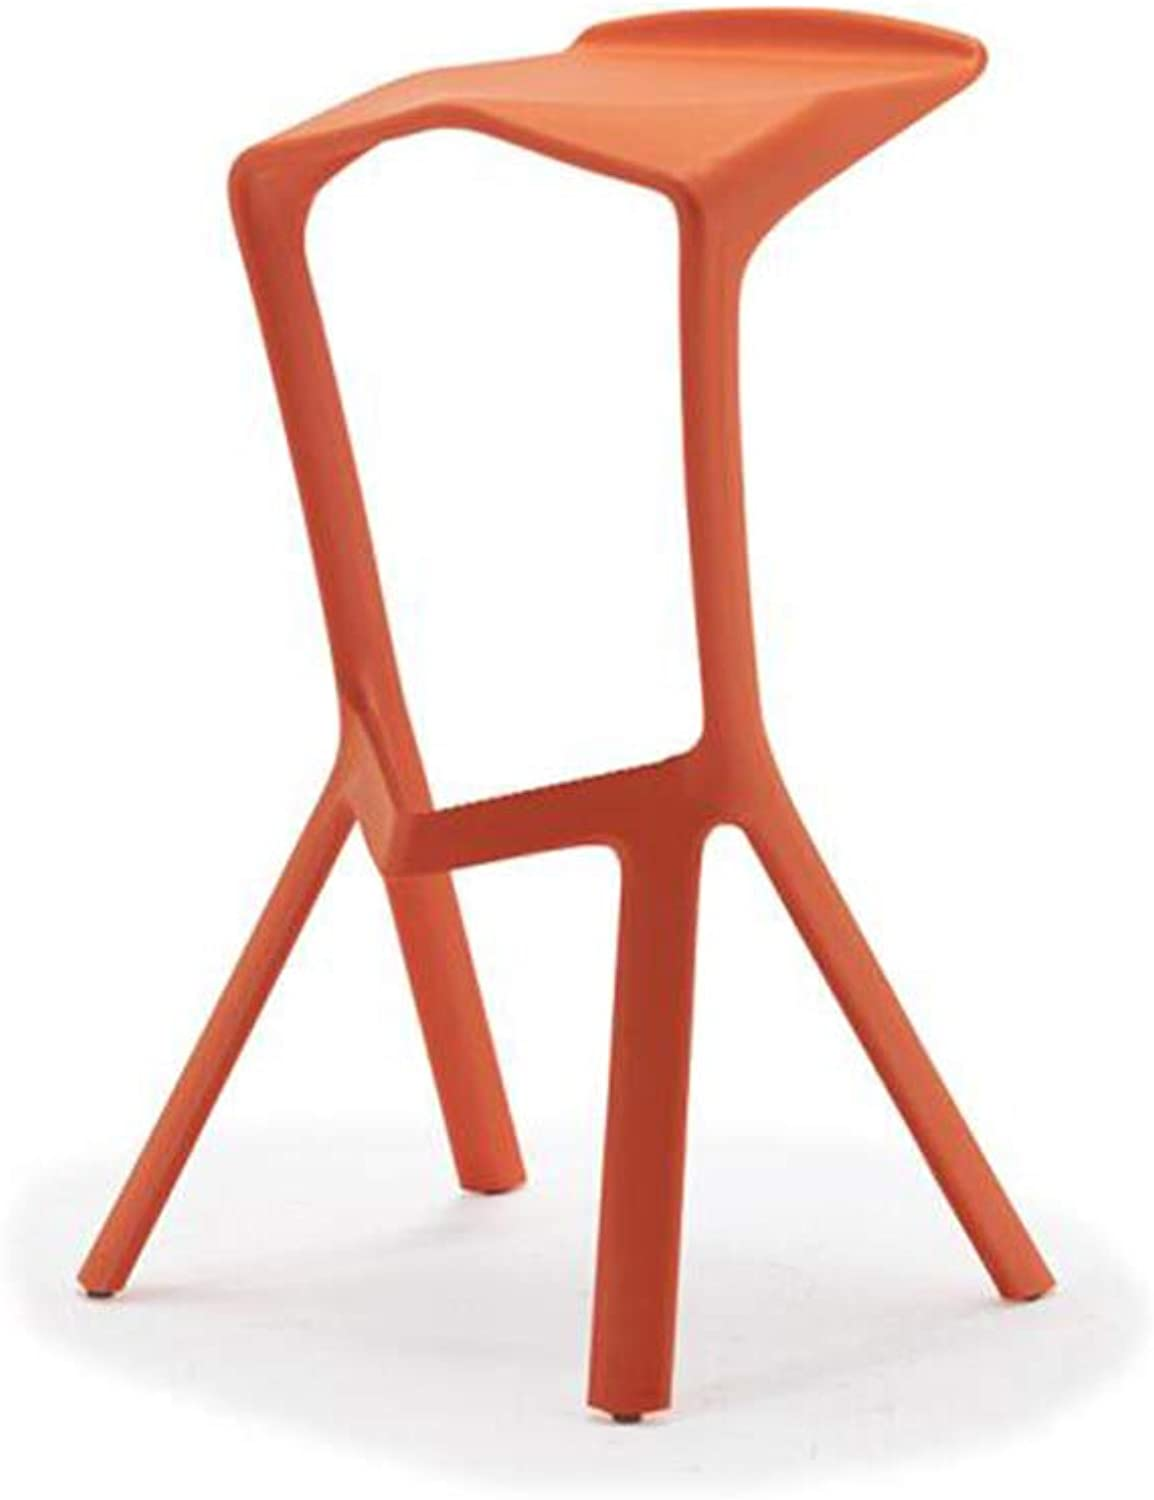 XUERUI Barstools Bar Stool Counter Chairs Anti-Slip for Home Kitchen Cafe Bar 6 colors Strong Stability (color   orange)